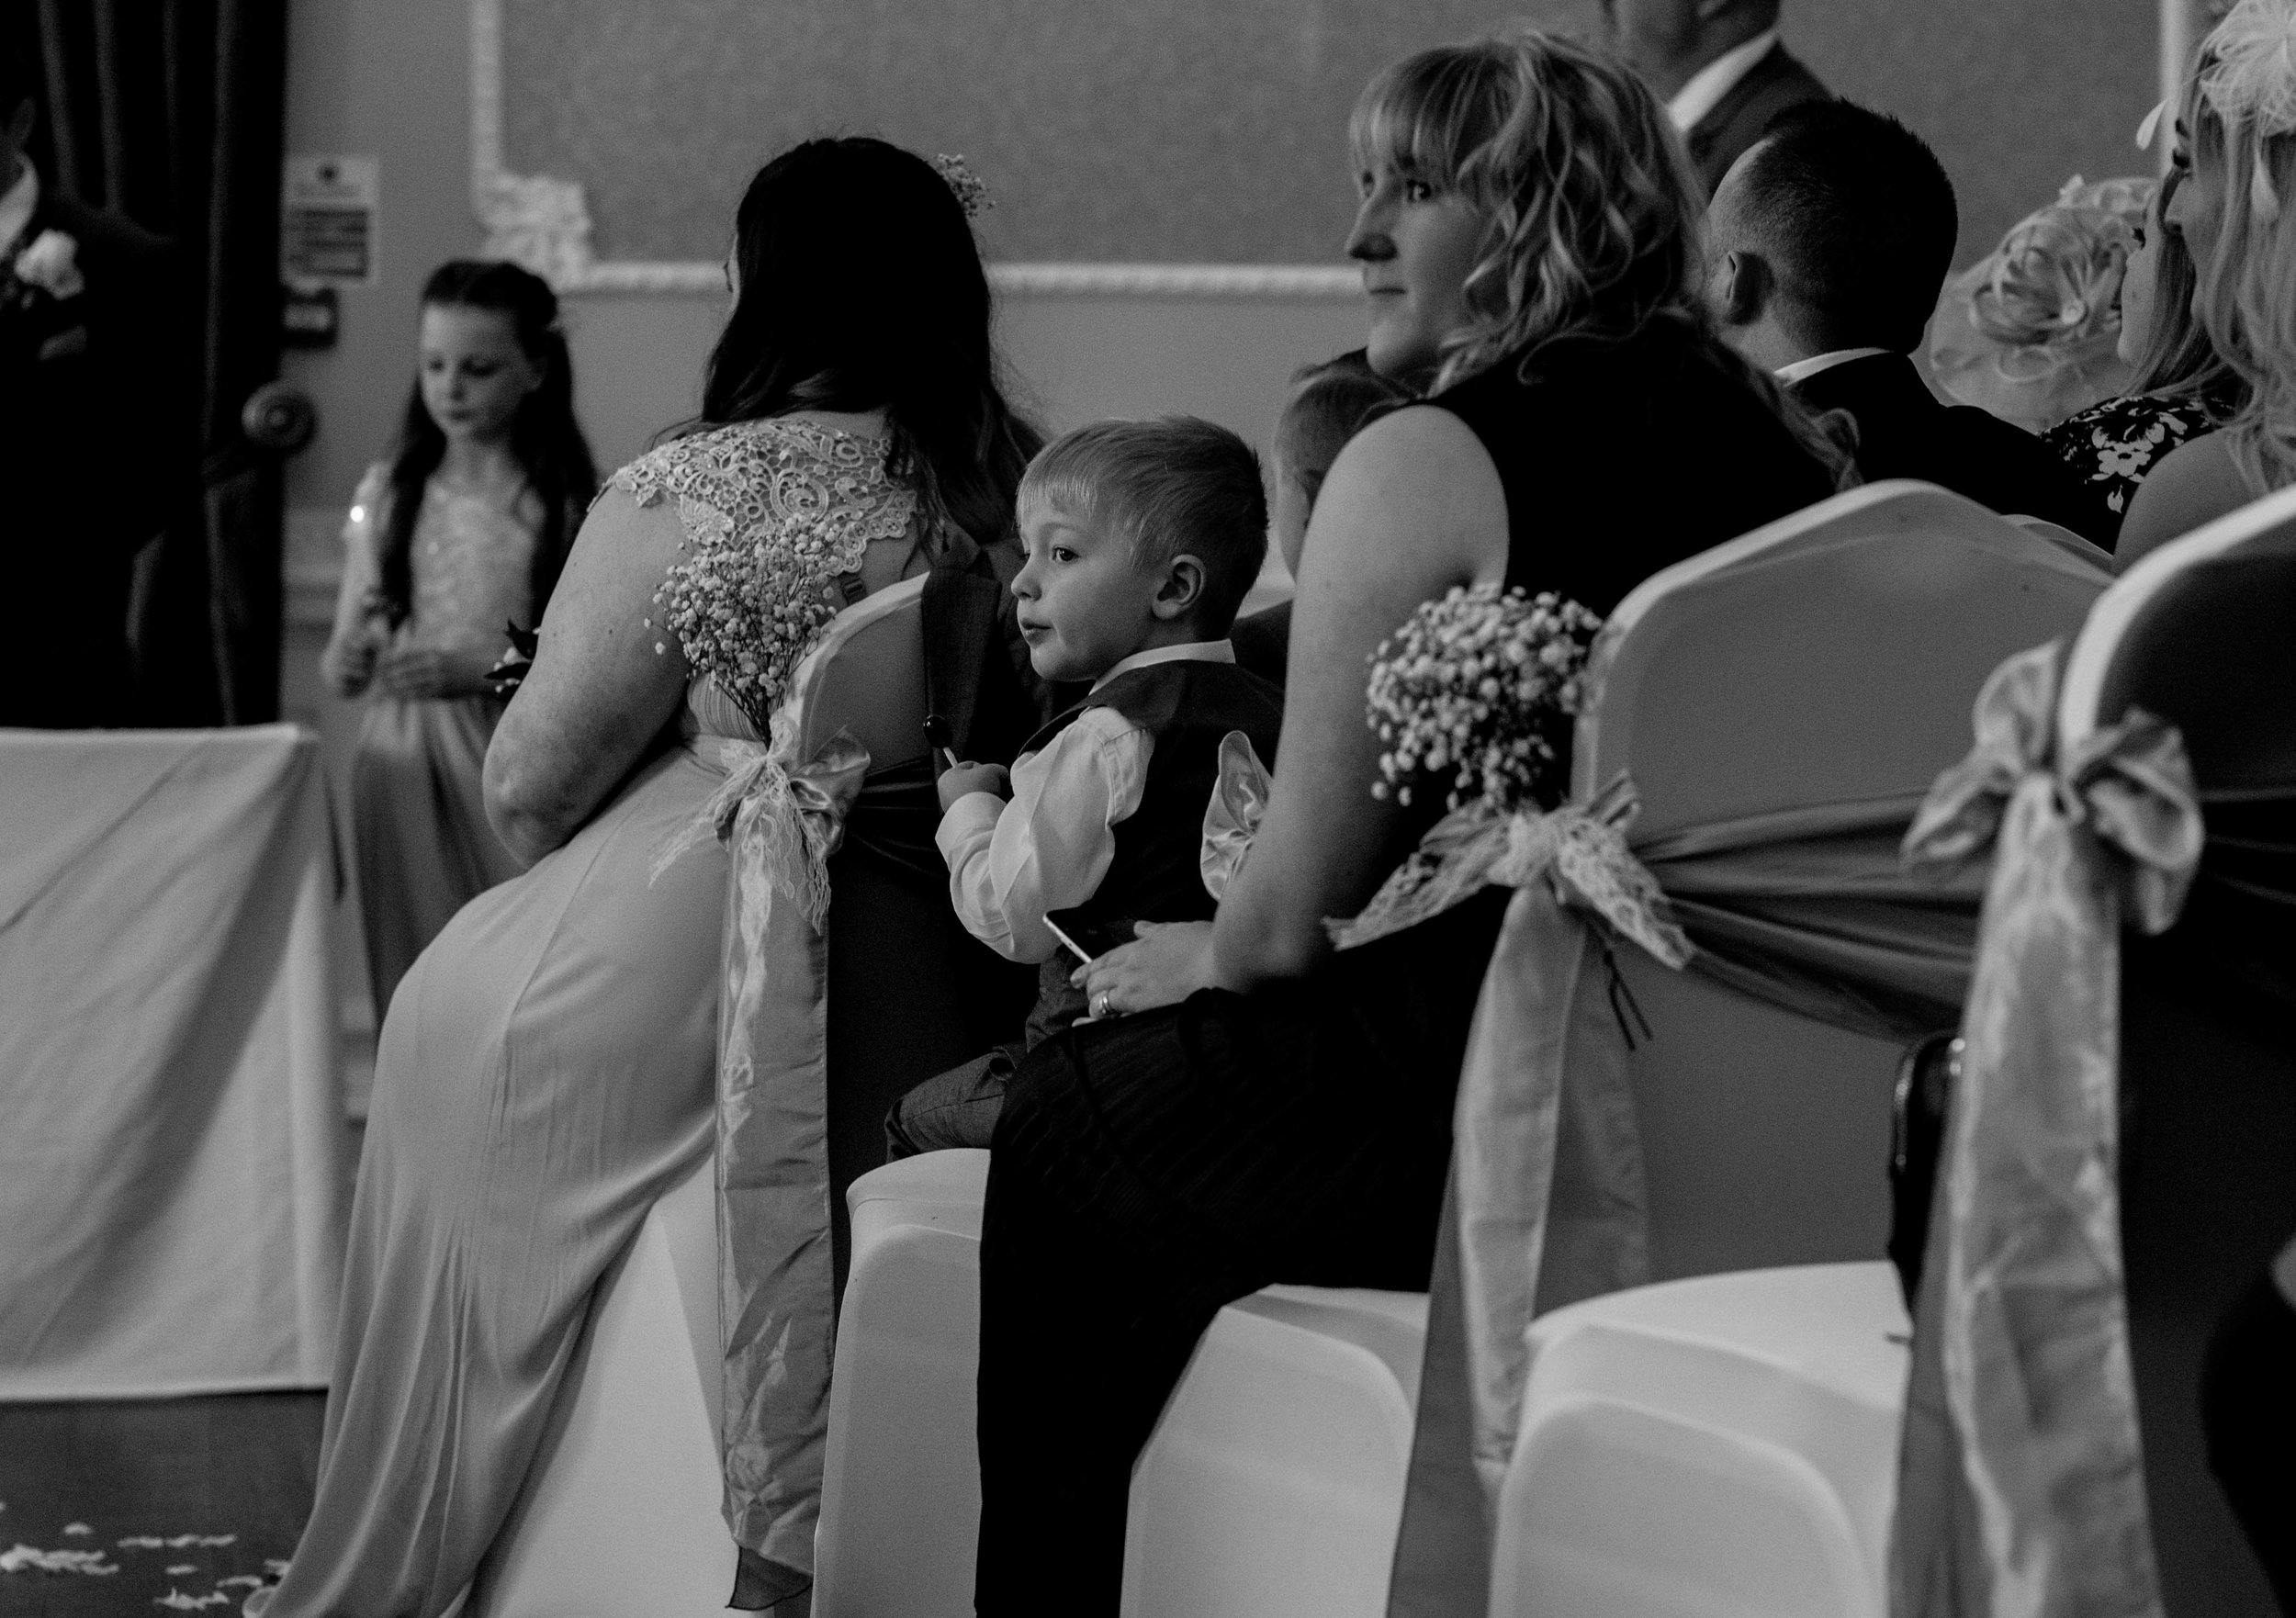 A young page boy sits quietly during the wedding ceremony